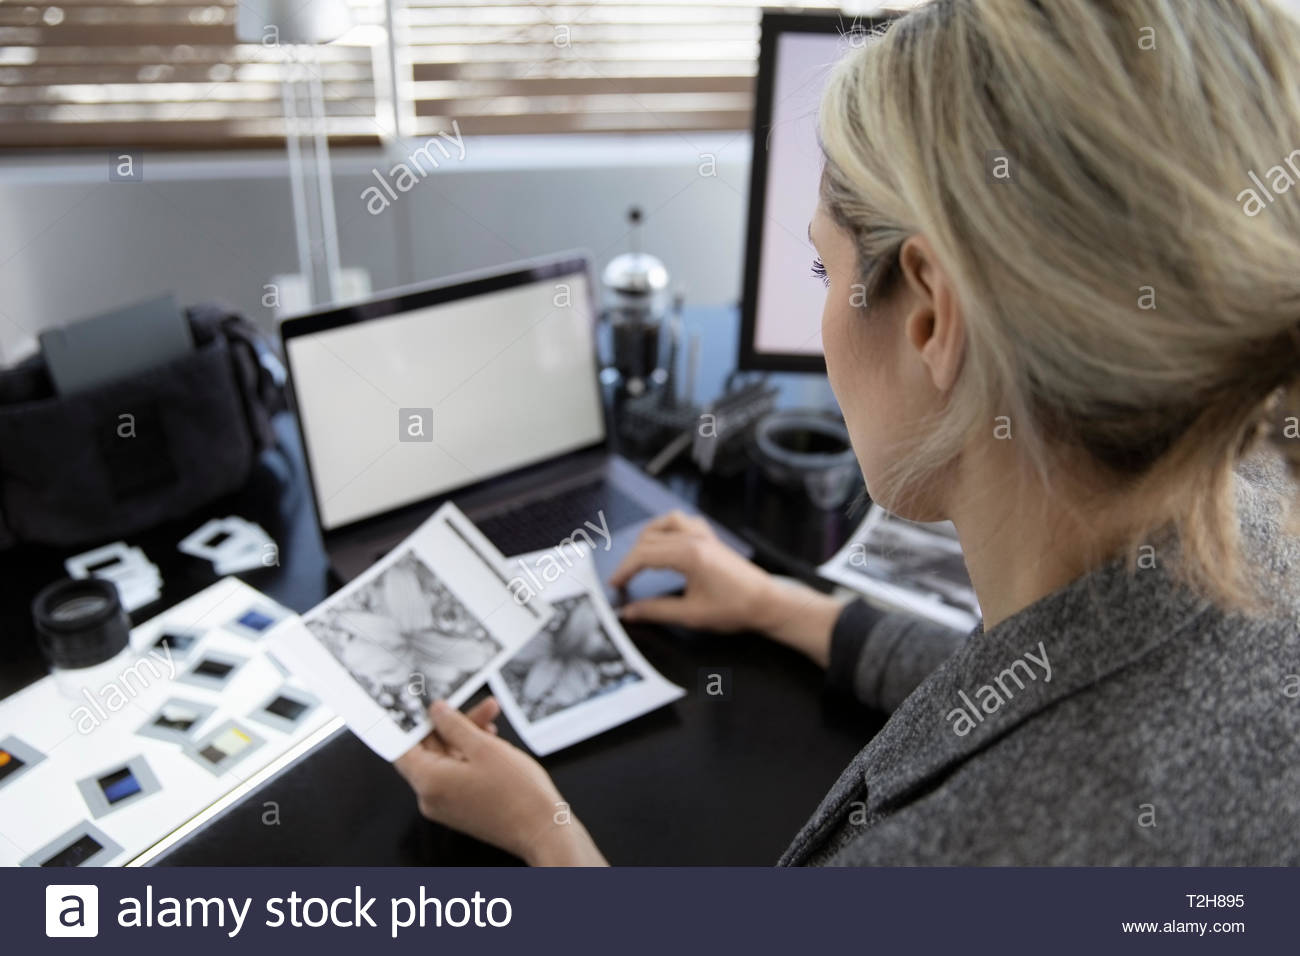 Female photographer reviewing negatives in office - Stock Image